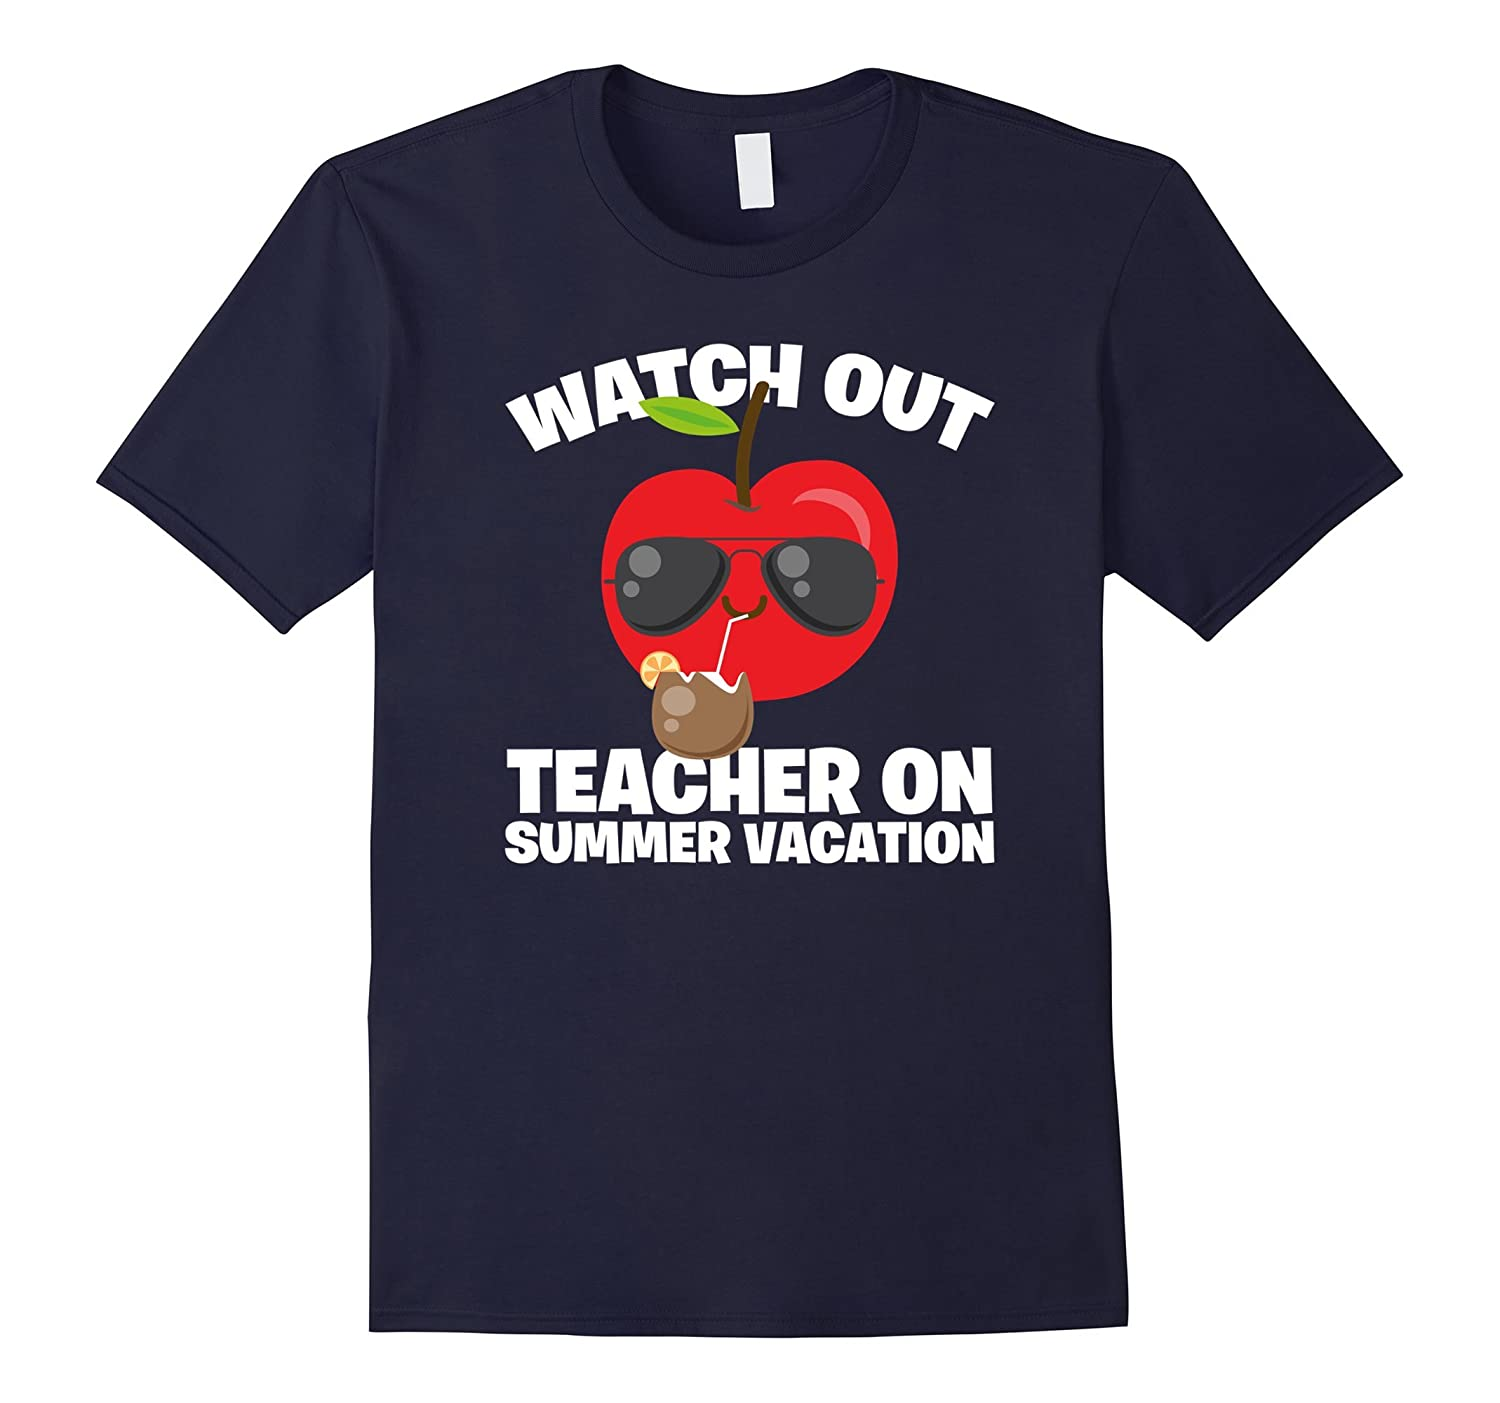 Watch out - teacher on a summer vacation funny t shirt-Vaci